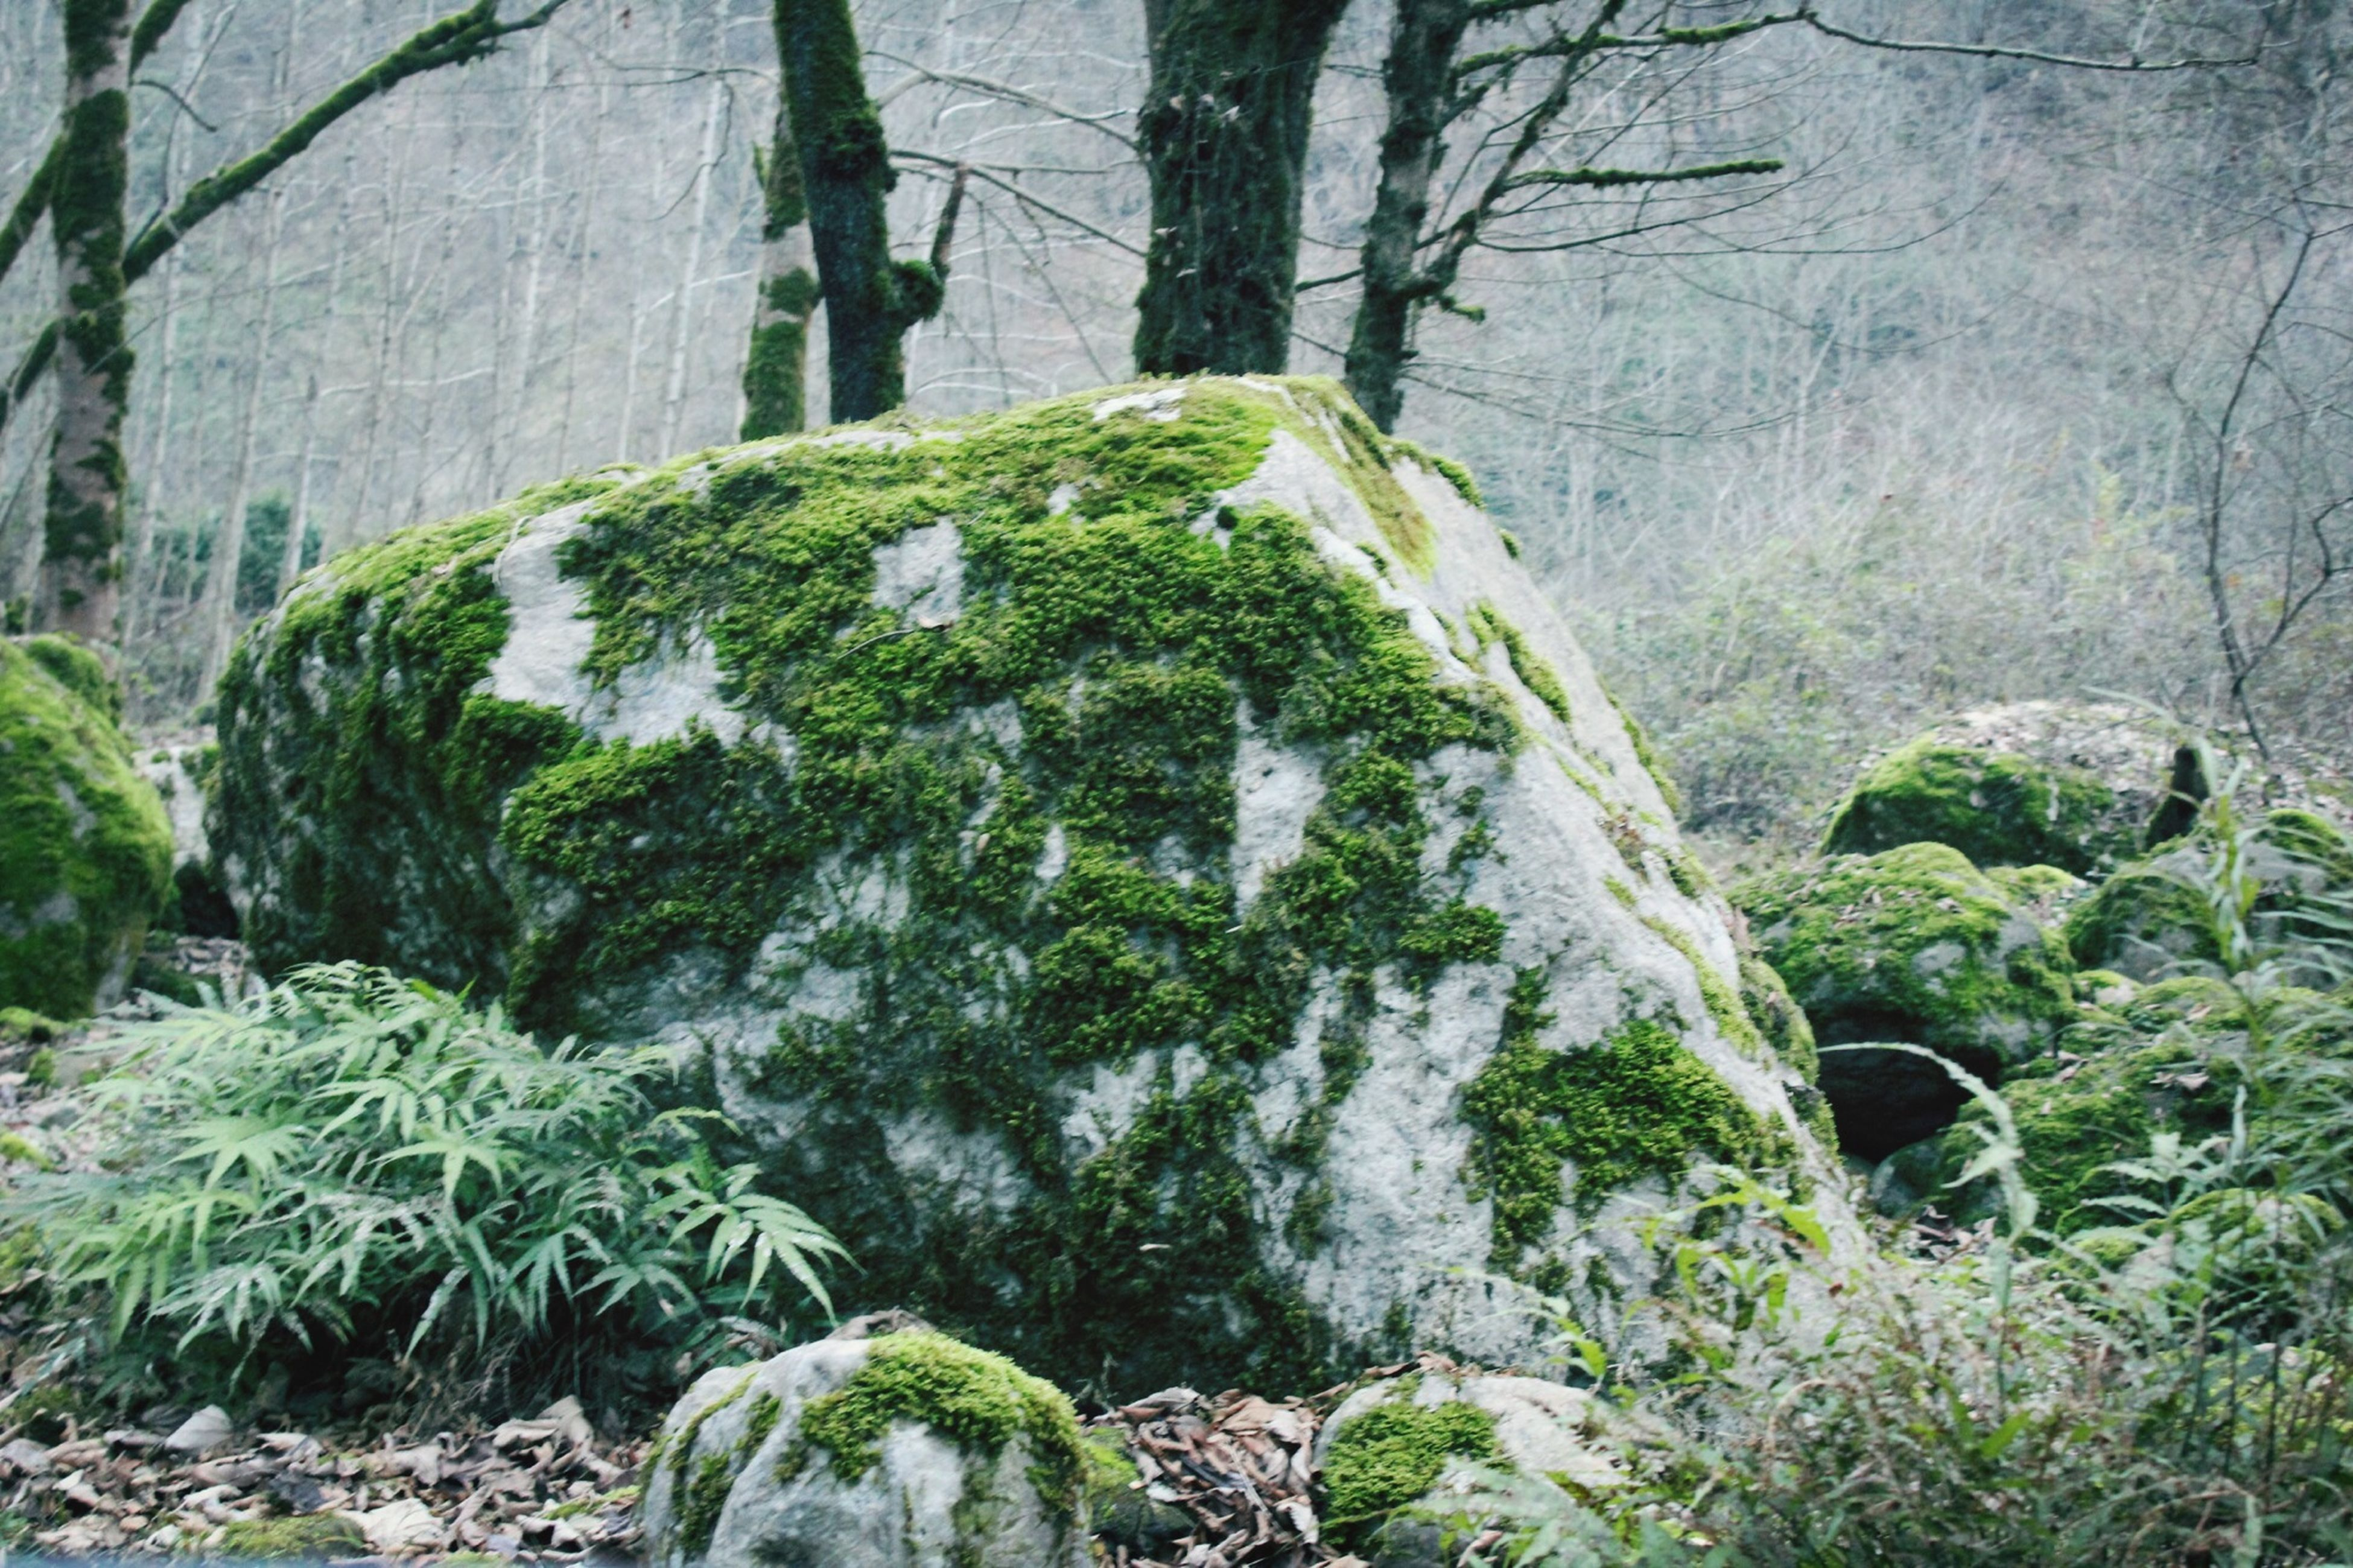 tree, growth, forest, tree trunk, nature, green color, tranquility, moss, plant, beauty in nature, tranquil scene, rock - object, growing, scenics, day, no people, outdoors, branch, woodland, leaf